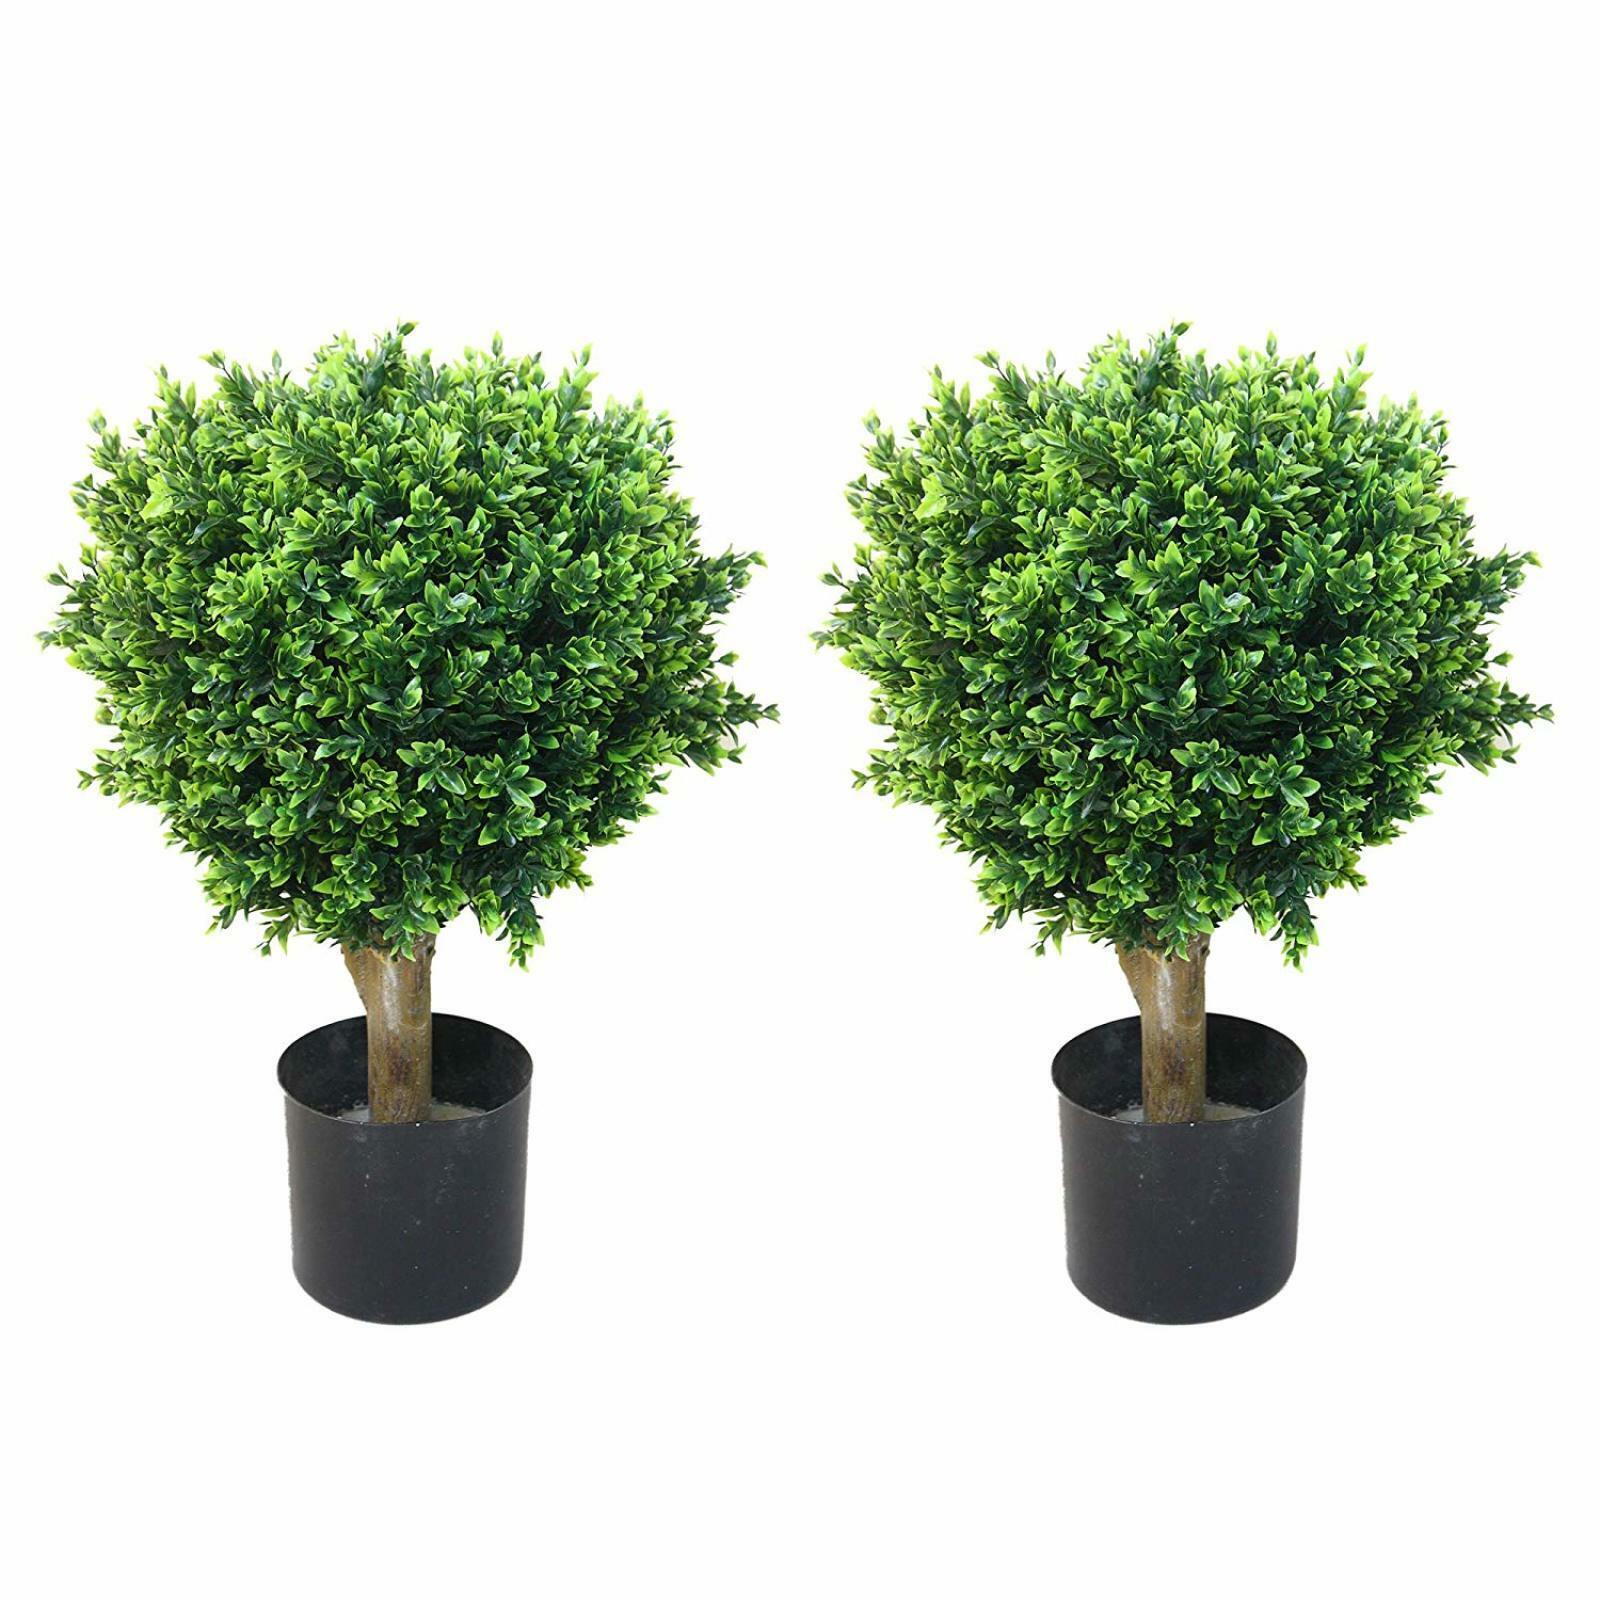 Topiary Trees Outdoor Large Artificial Potted Plants Stands Set Of